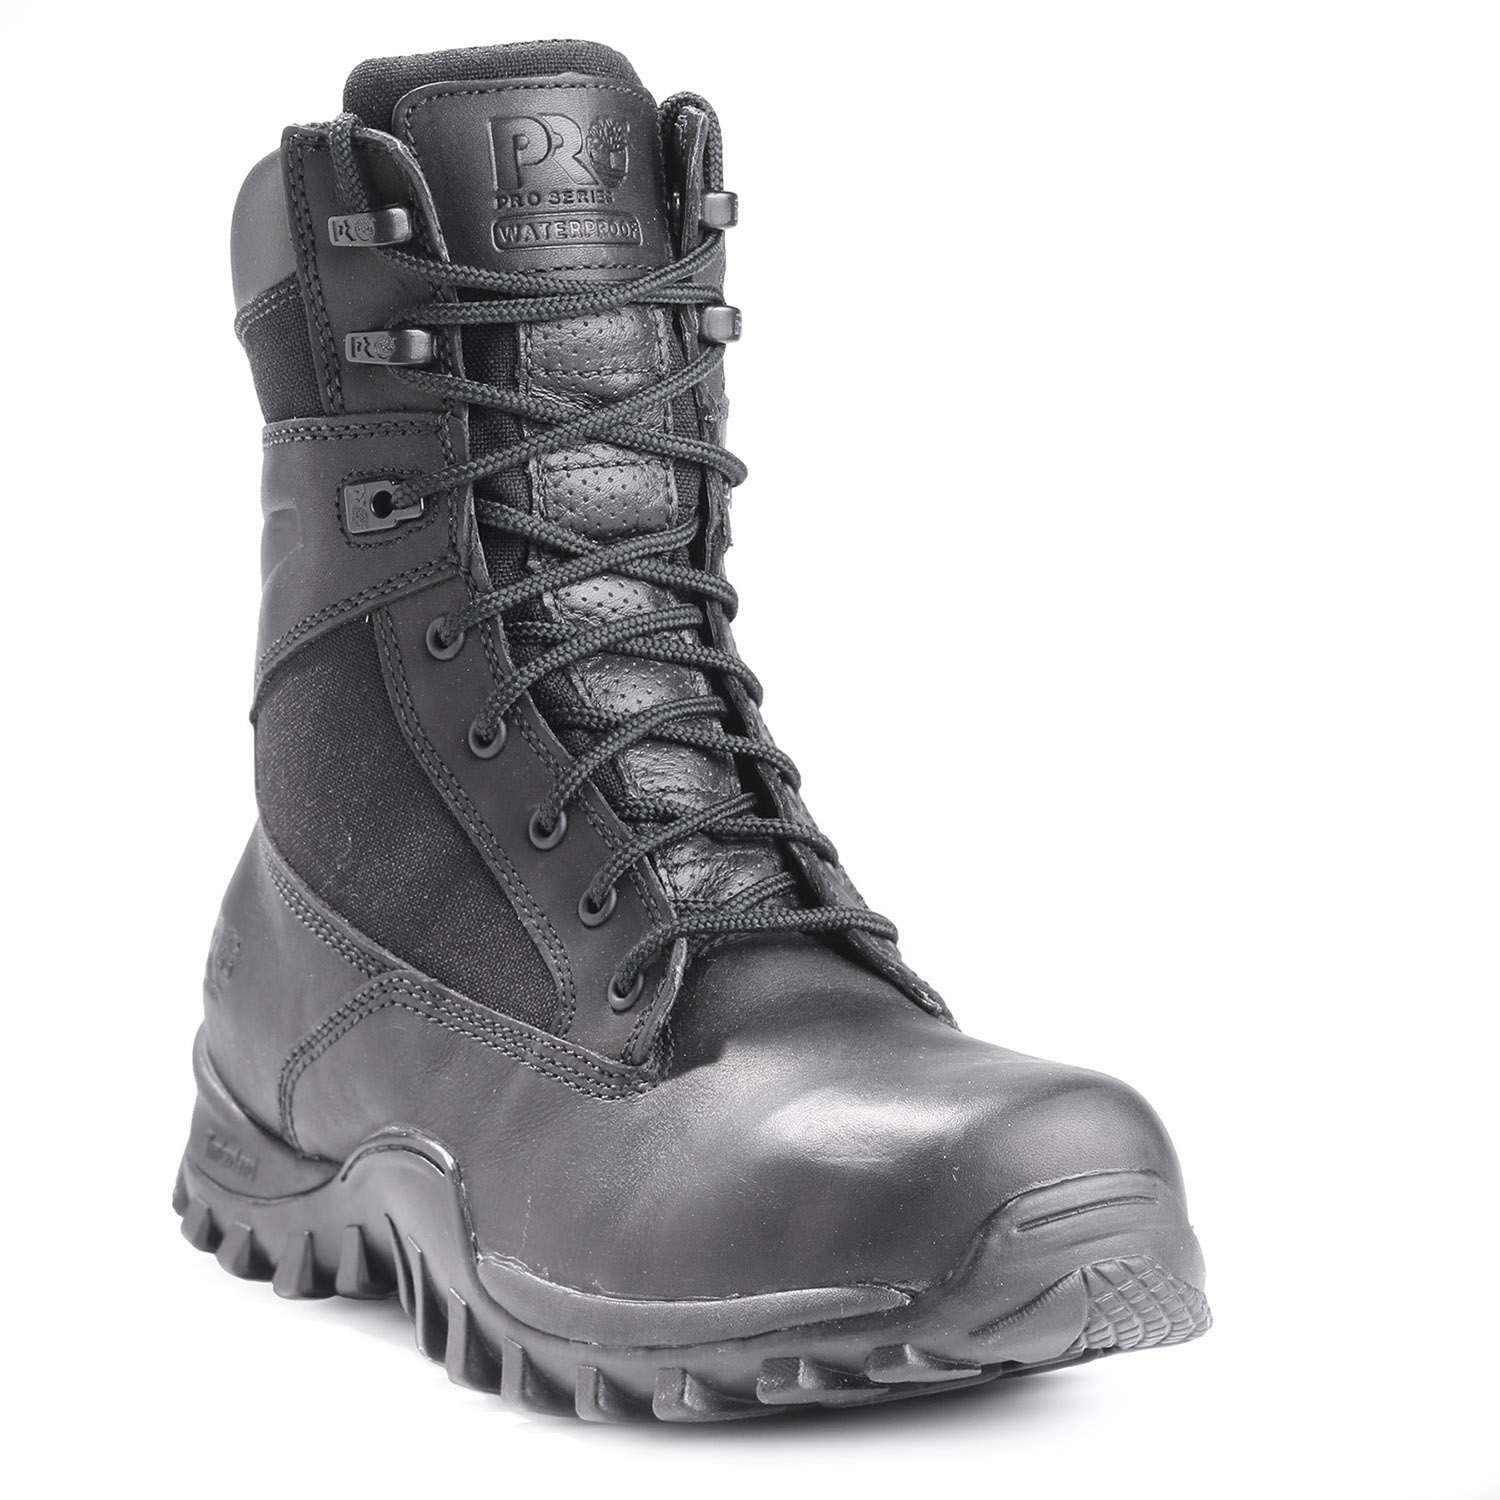 Buy work boots online. Shoes